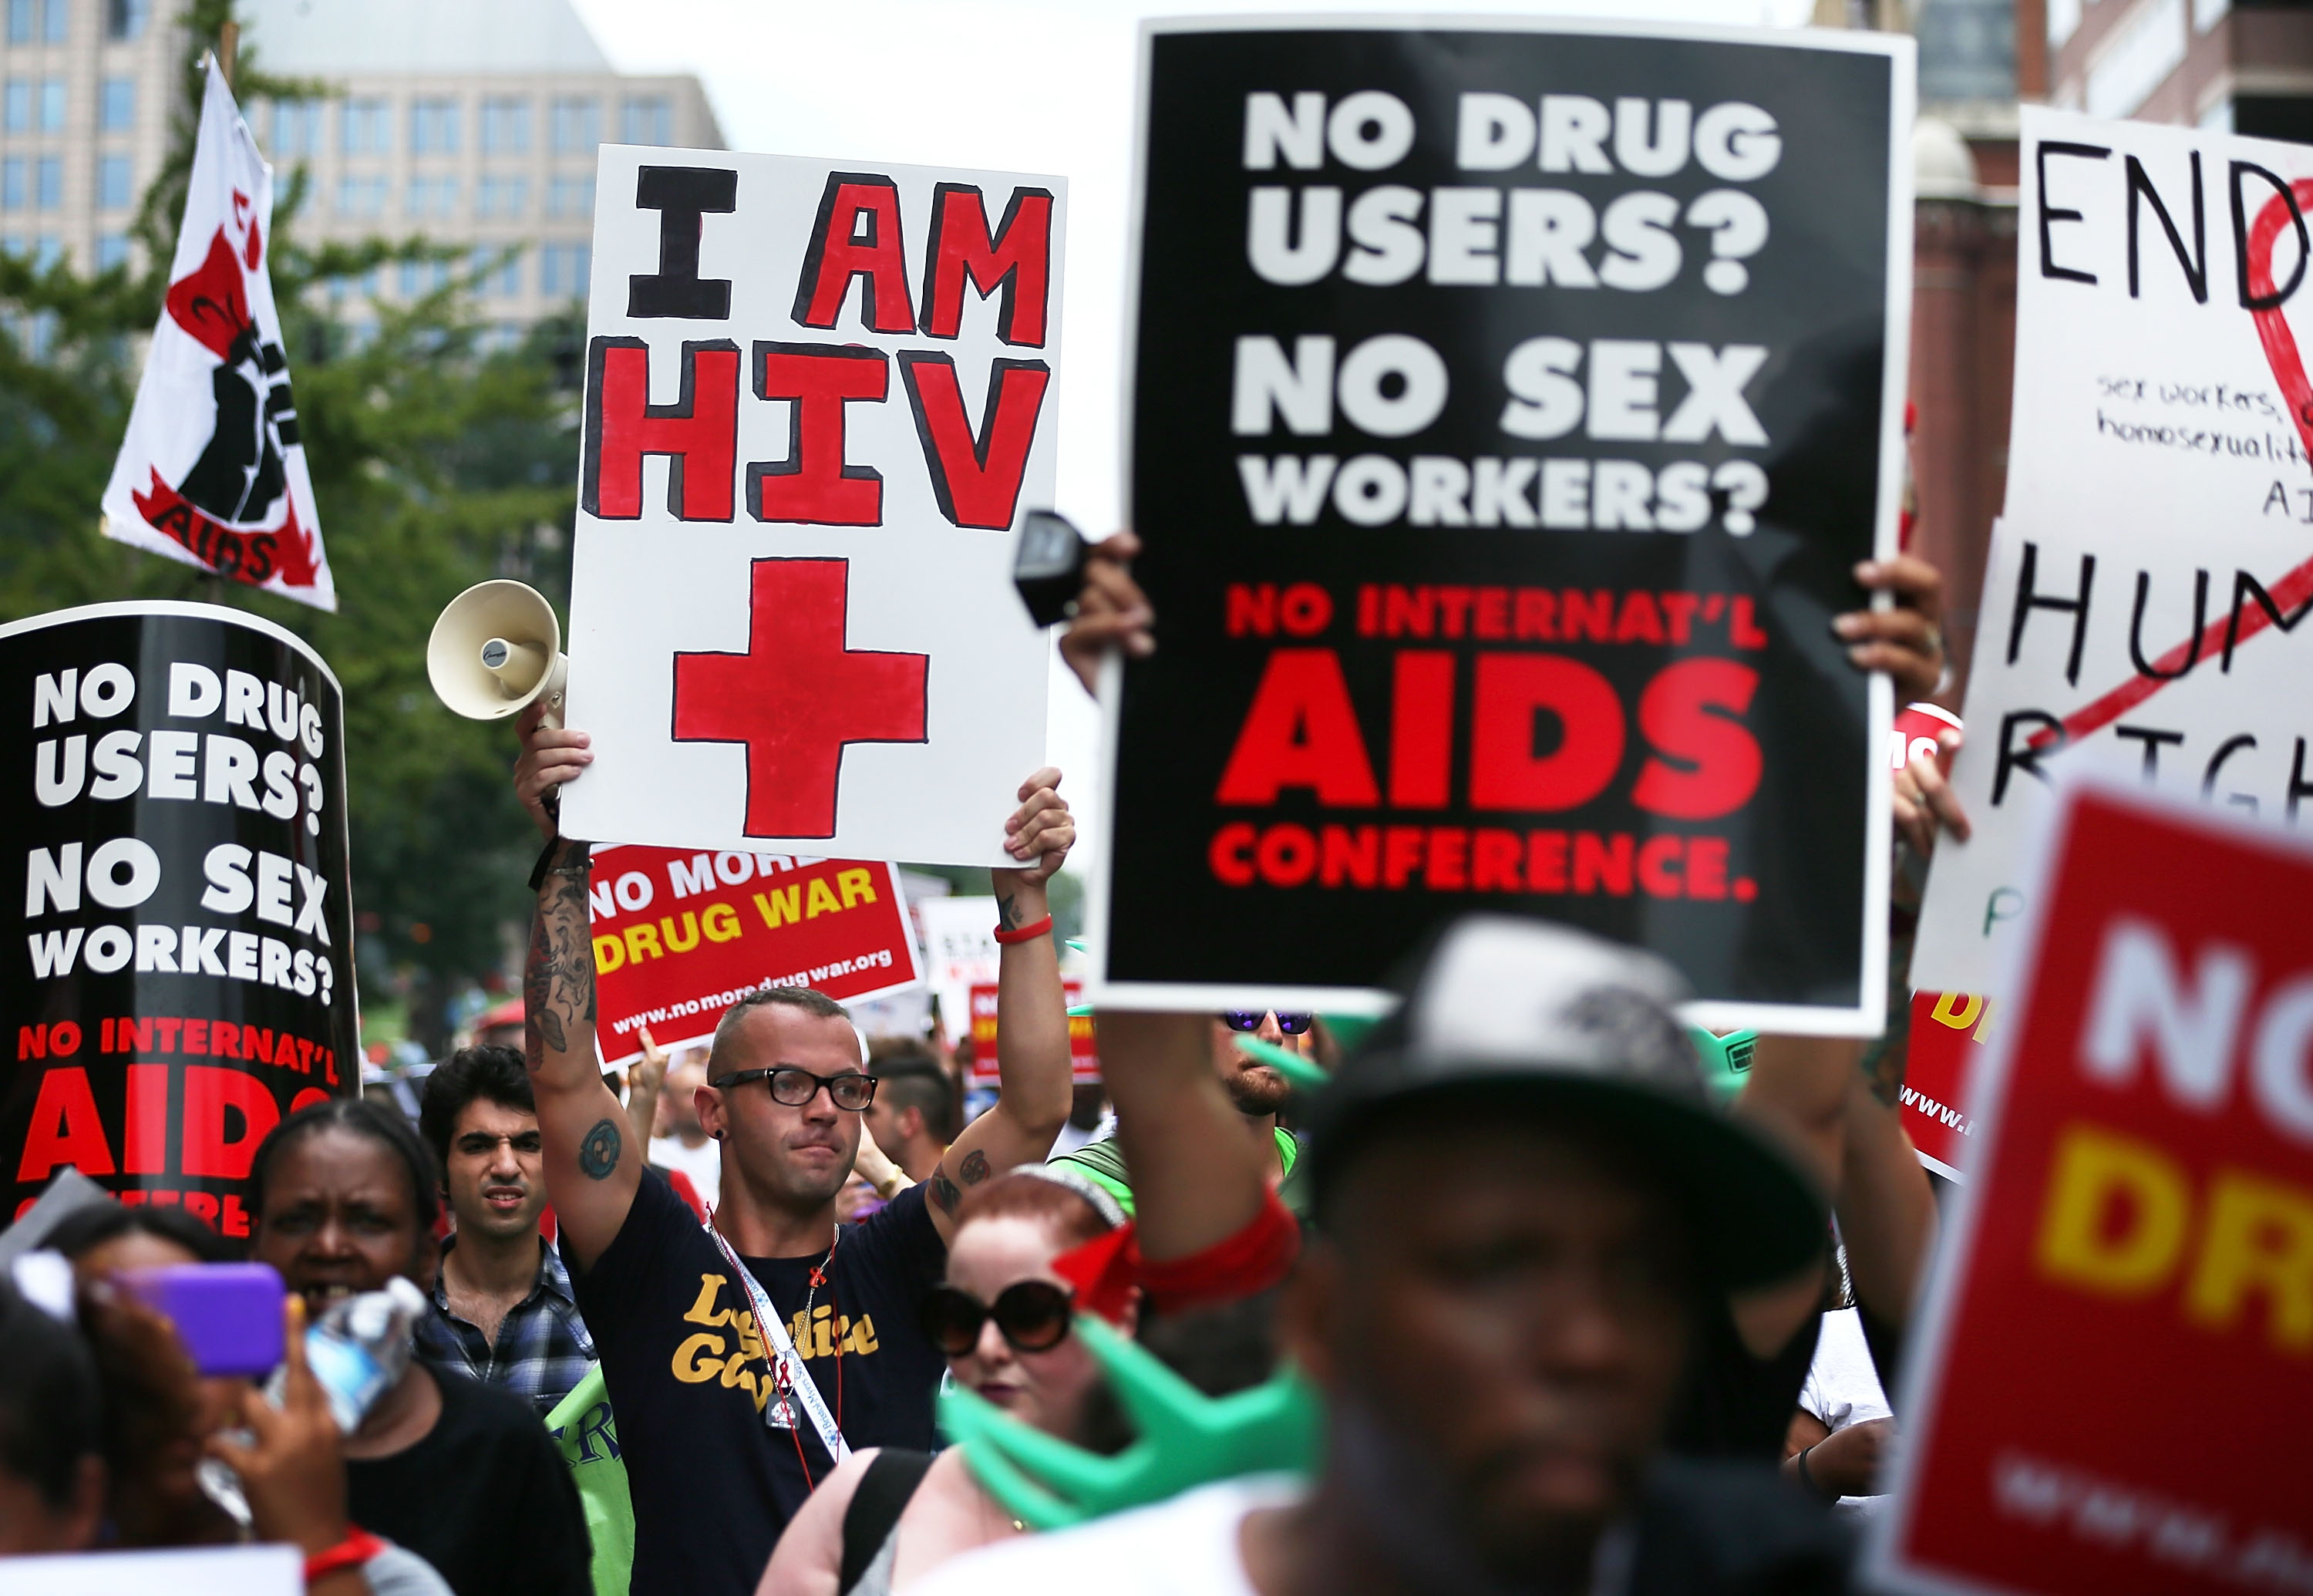 HIV+ patient Aaron Laxton (Center R) of St. Louis, Missouri, and other activists participate in a march from the Washington Convention Center to the White House July 24, 2012 in Washington, DC. (Photo by Alex Wong/Getty Images)